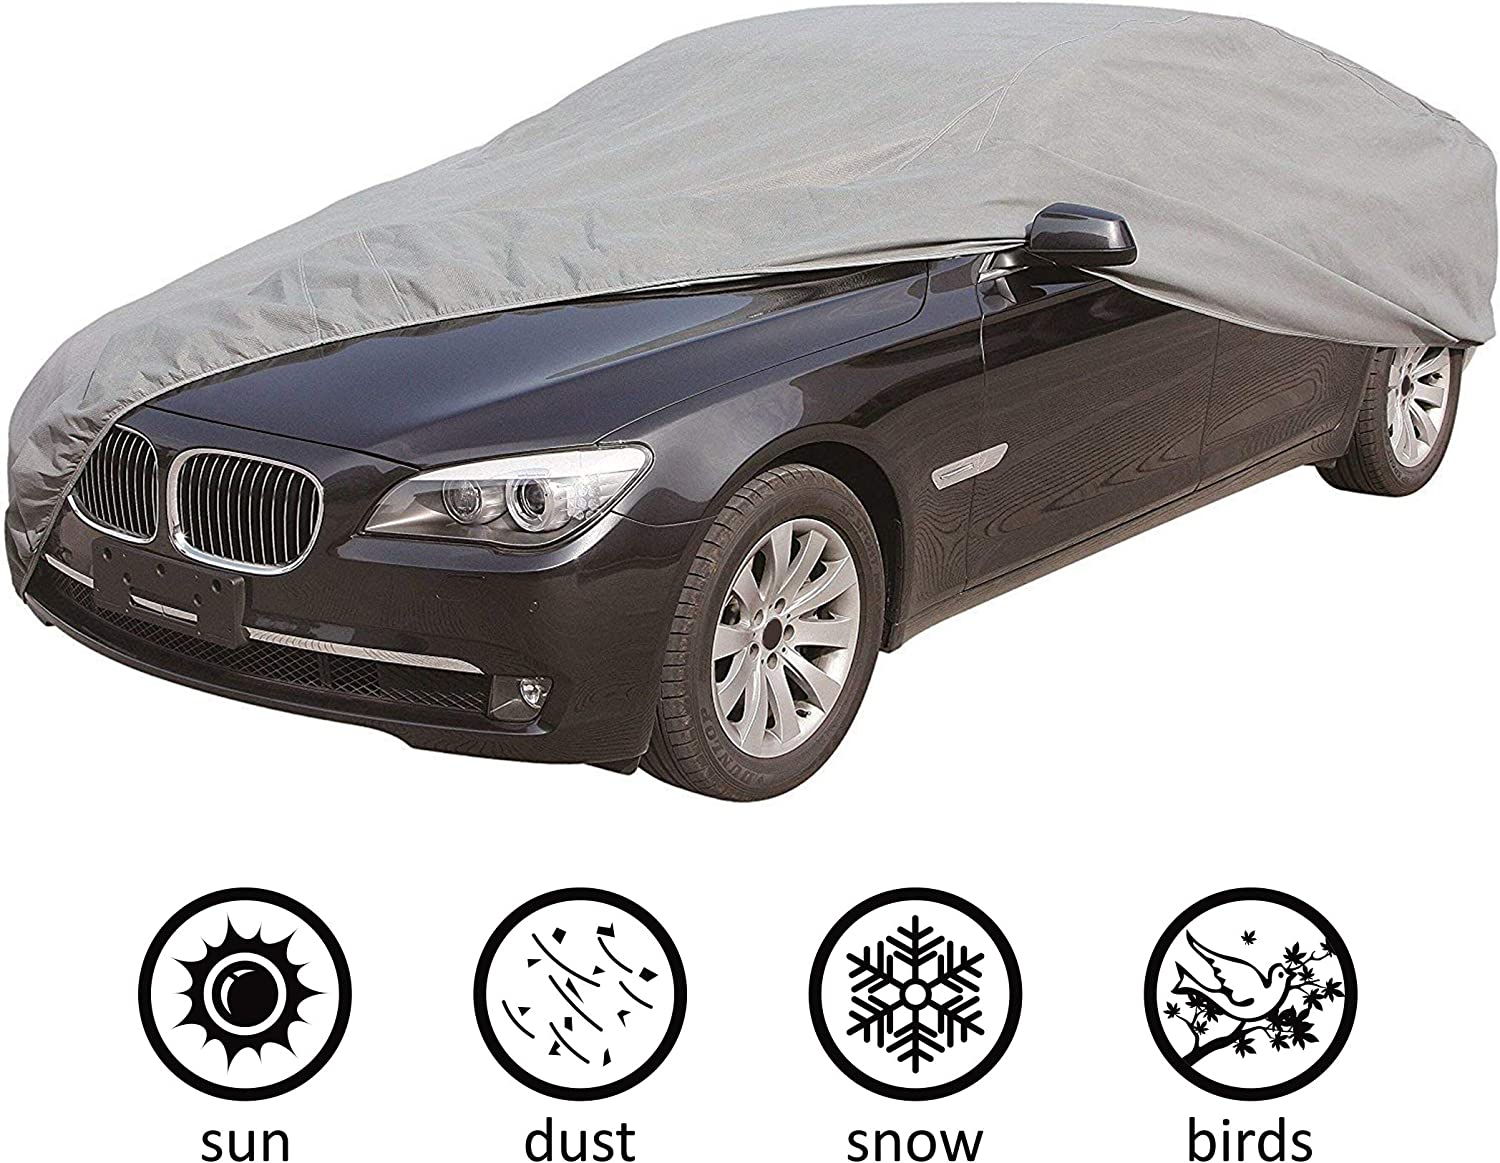 """CARTMAN 5 Layers Car Cover Sedan Cover Windproof/Dustproof/Scratch Resistant Outdoor UV Protection, Size:M - Fits Sedan up to 170"""""""